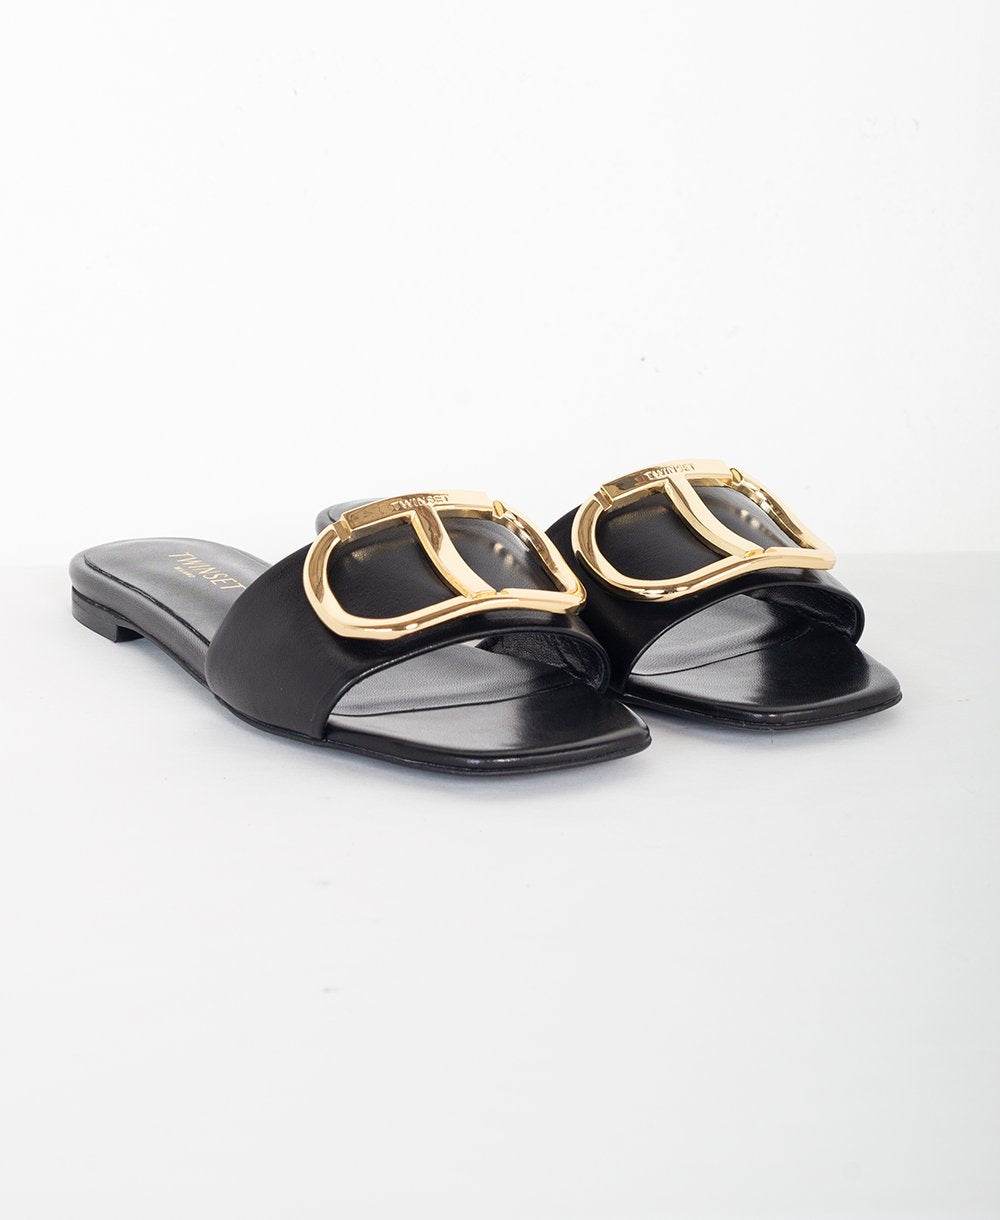 TWIN-SET Sandali slide in pelle con logo 211TCT014